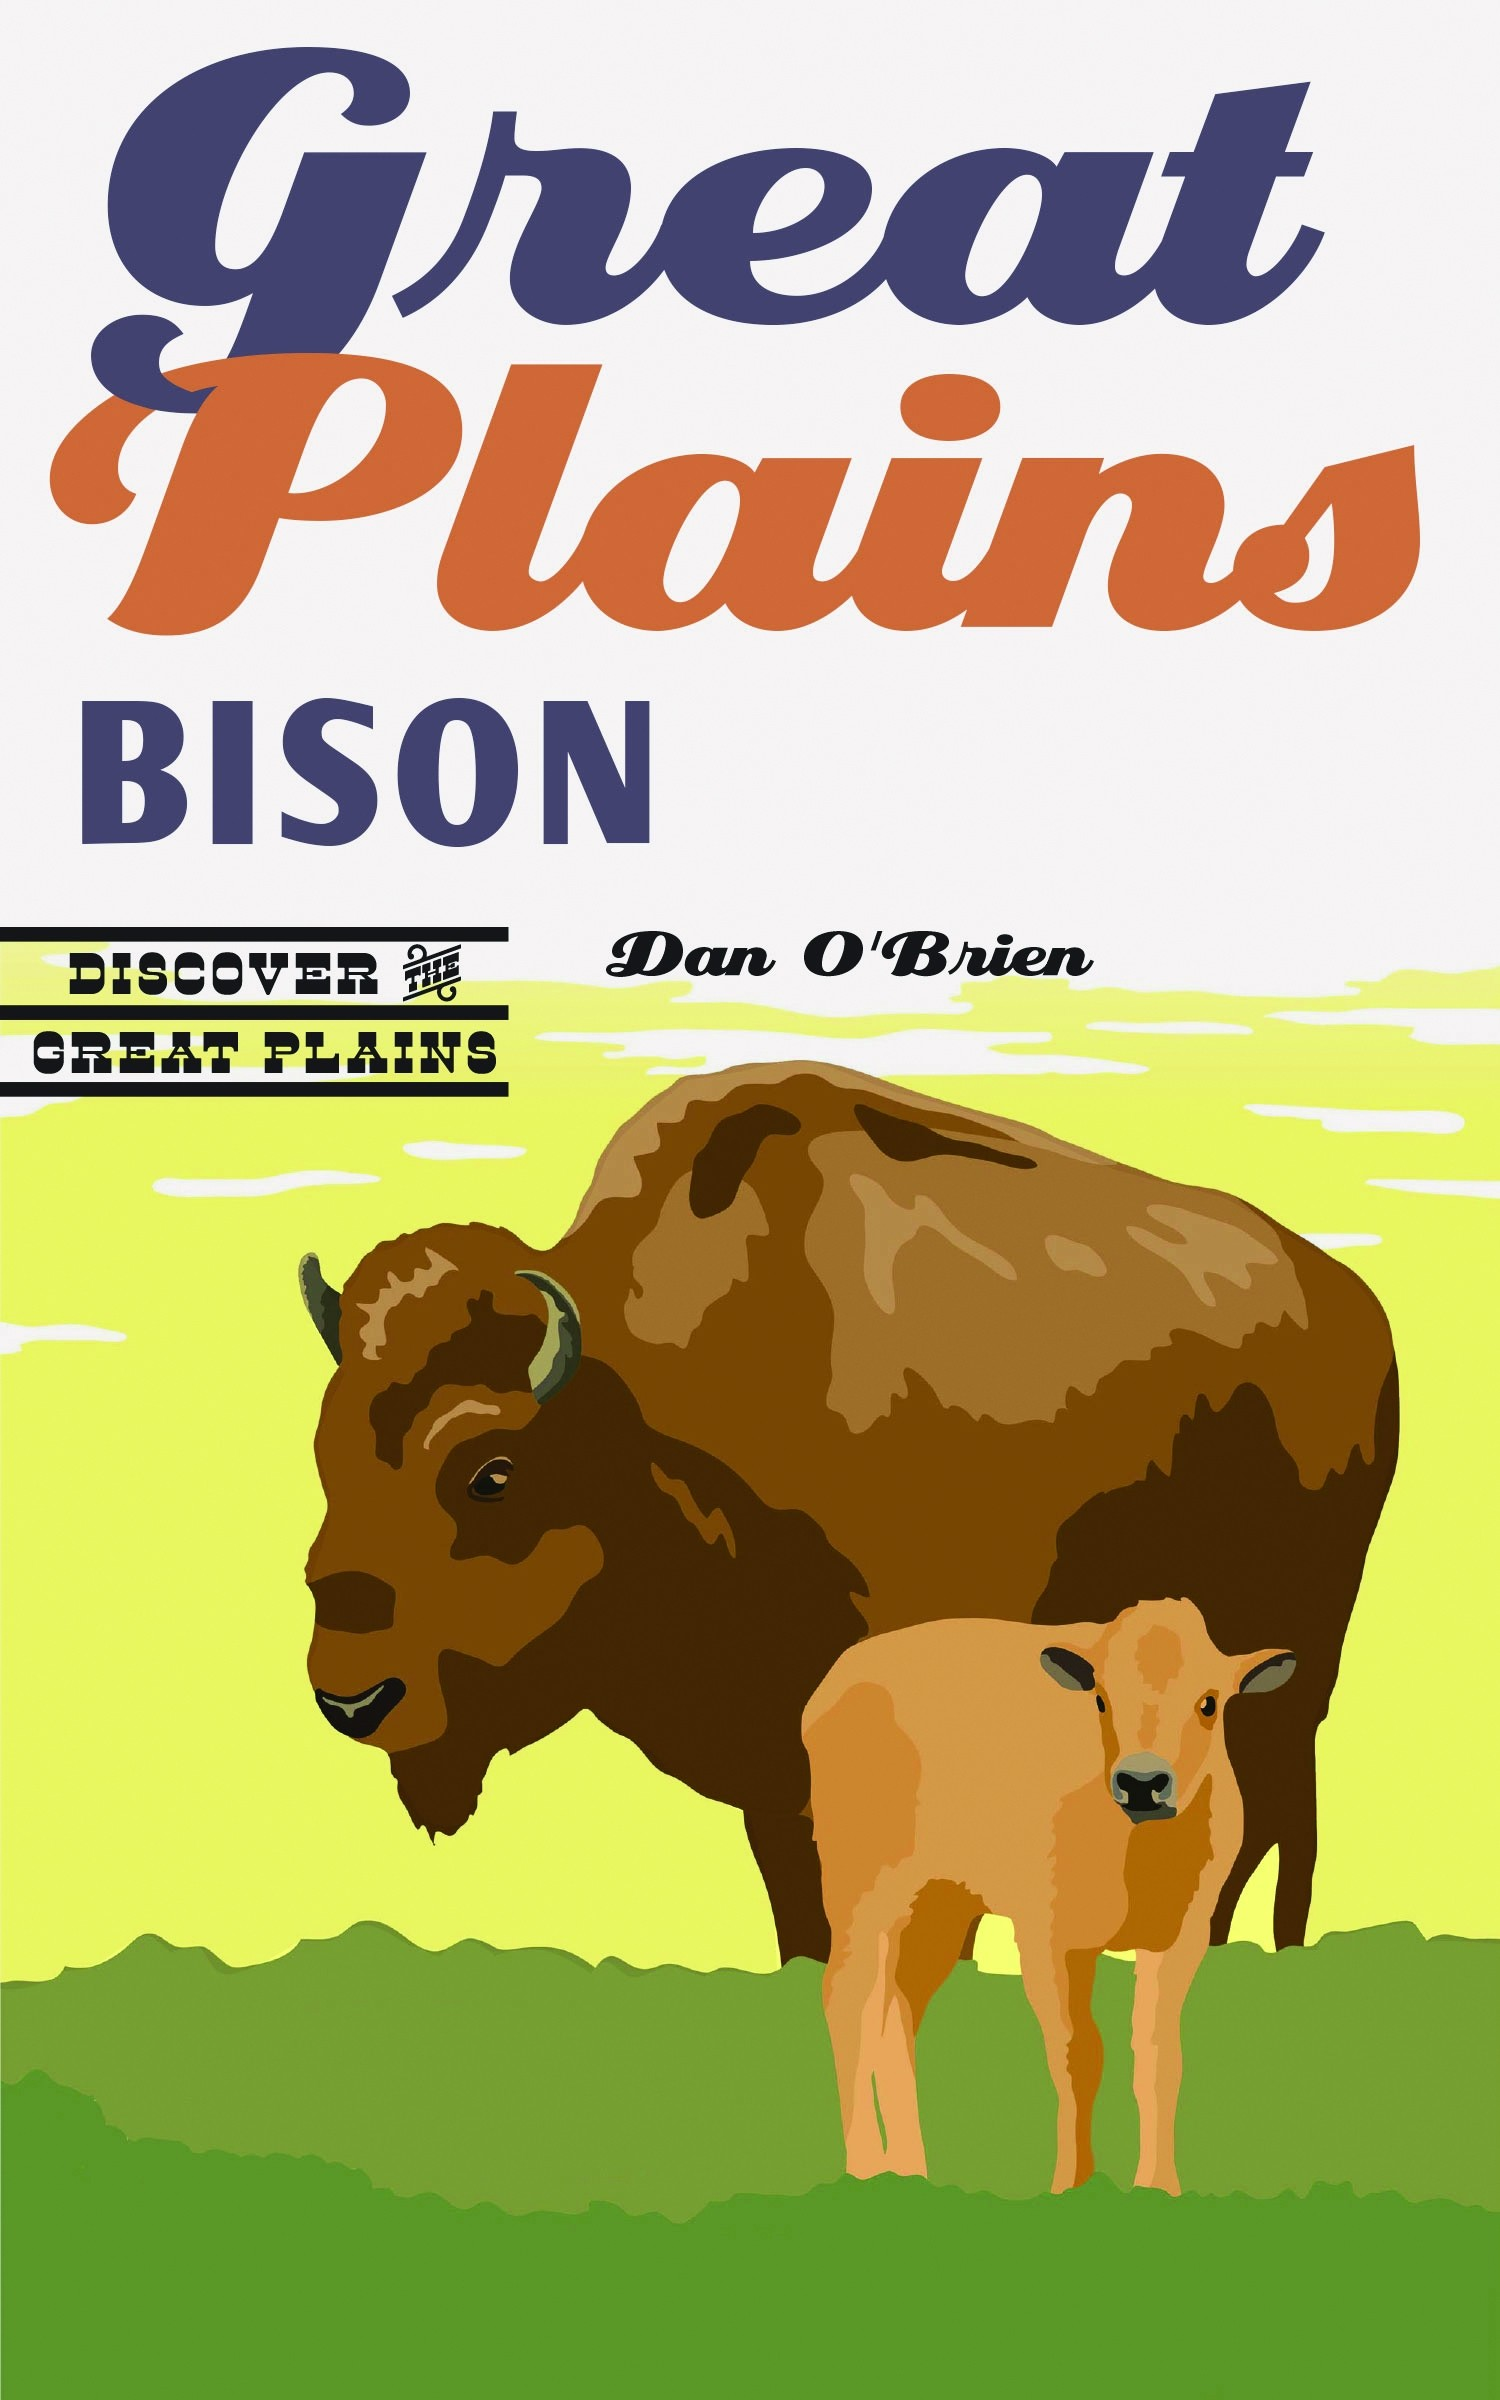 Great Plains Bison (MP-127)